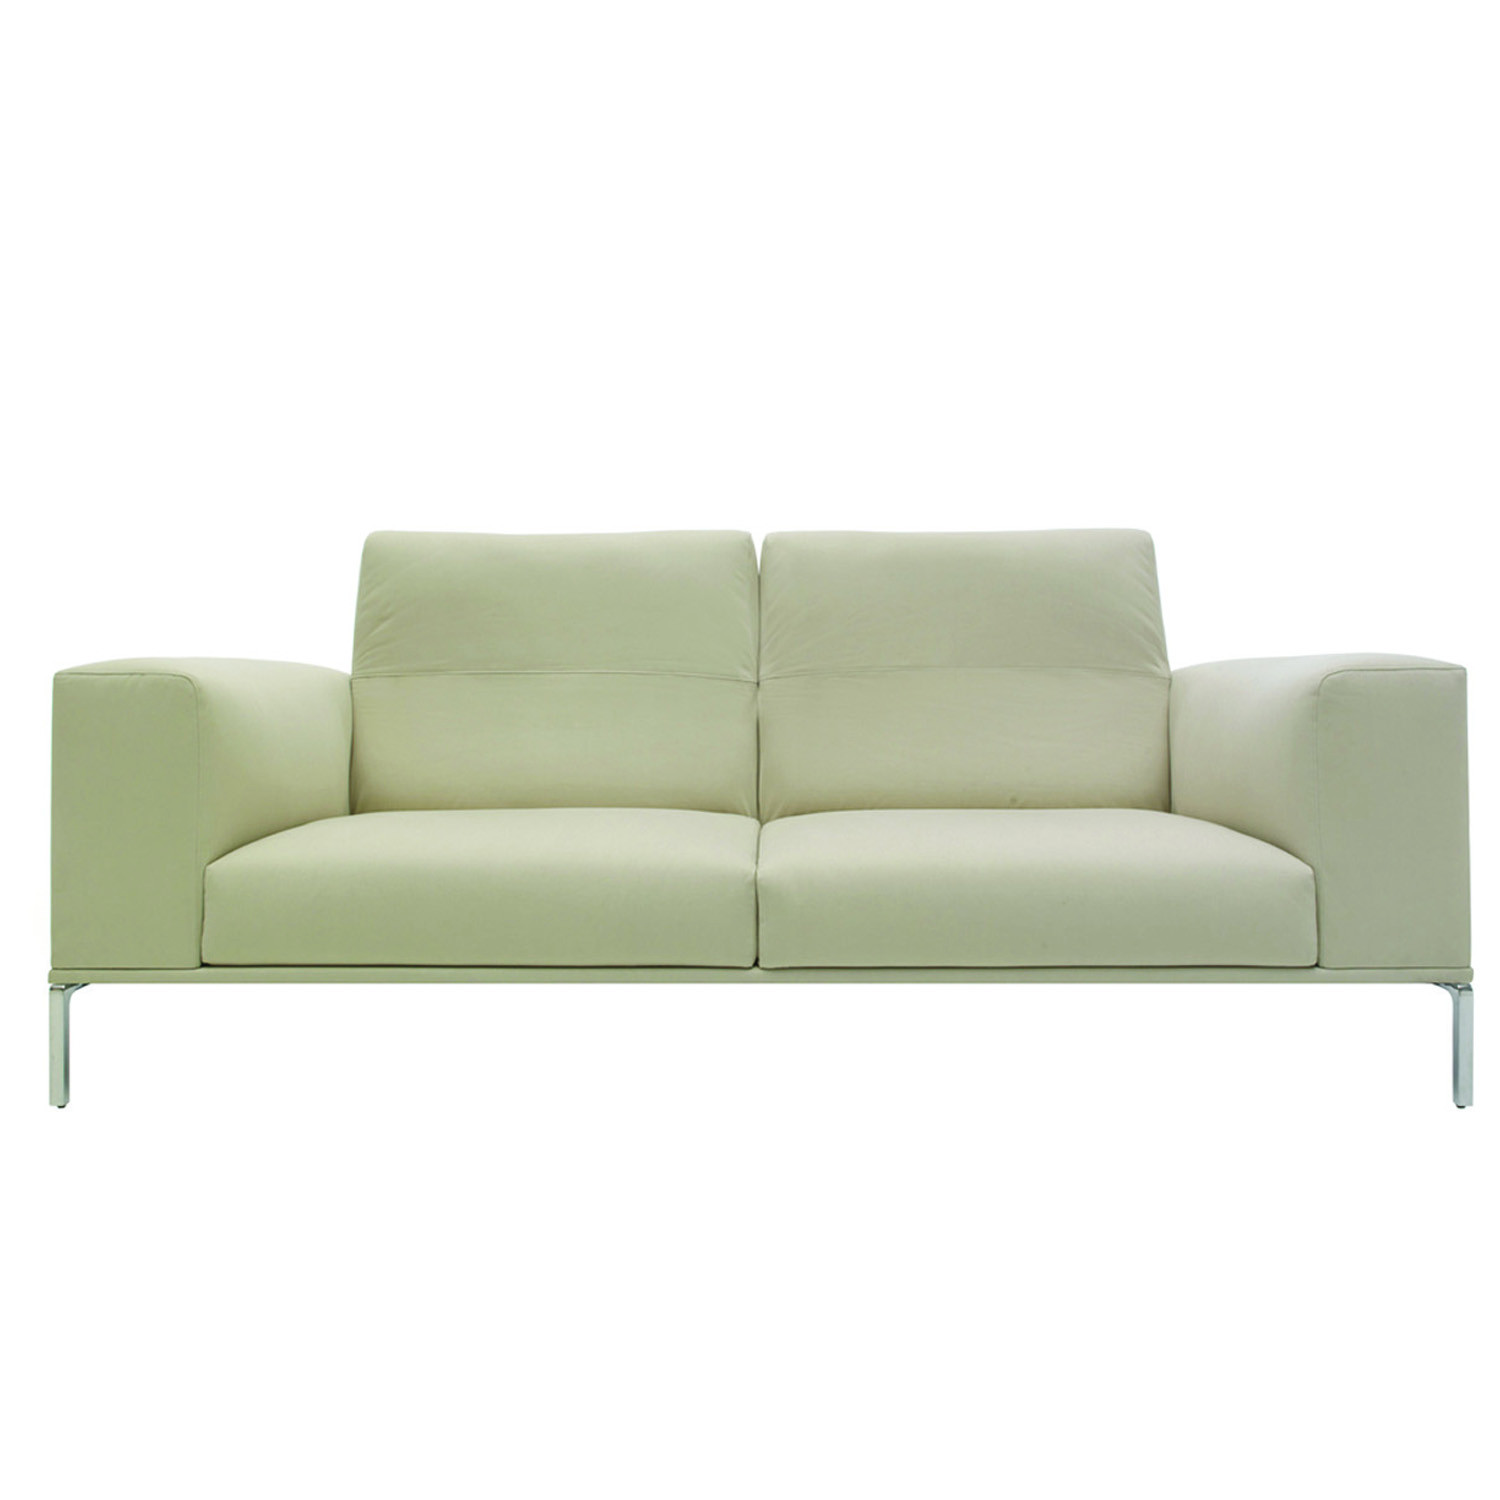 191 Moov Sofa 2 Seater by Cassina